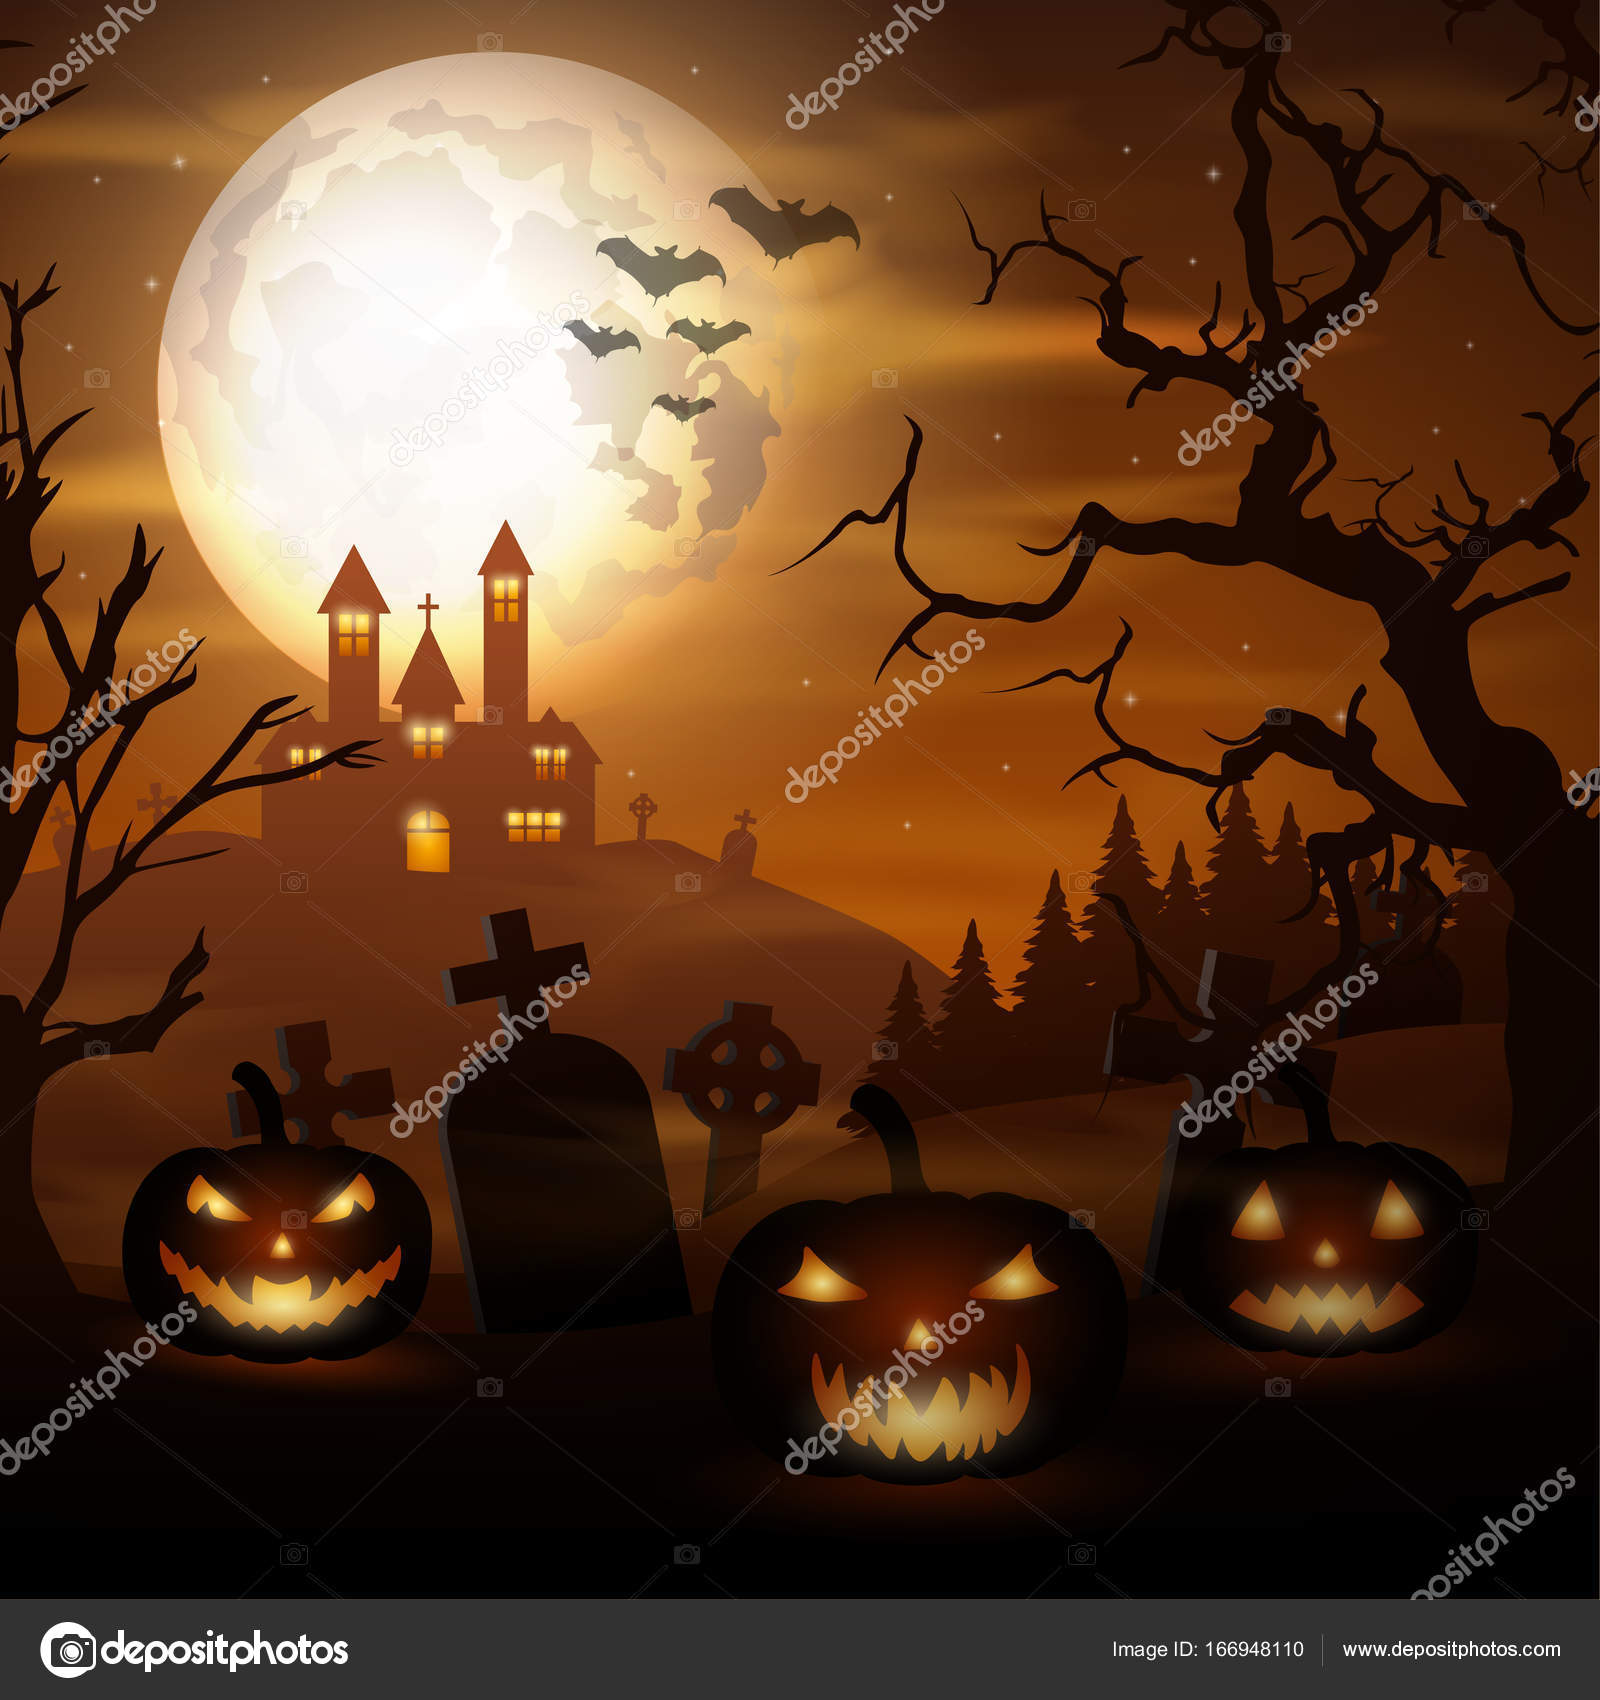 halloween background with pumpkins and scary church on graveyard stock vector